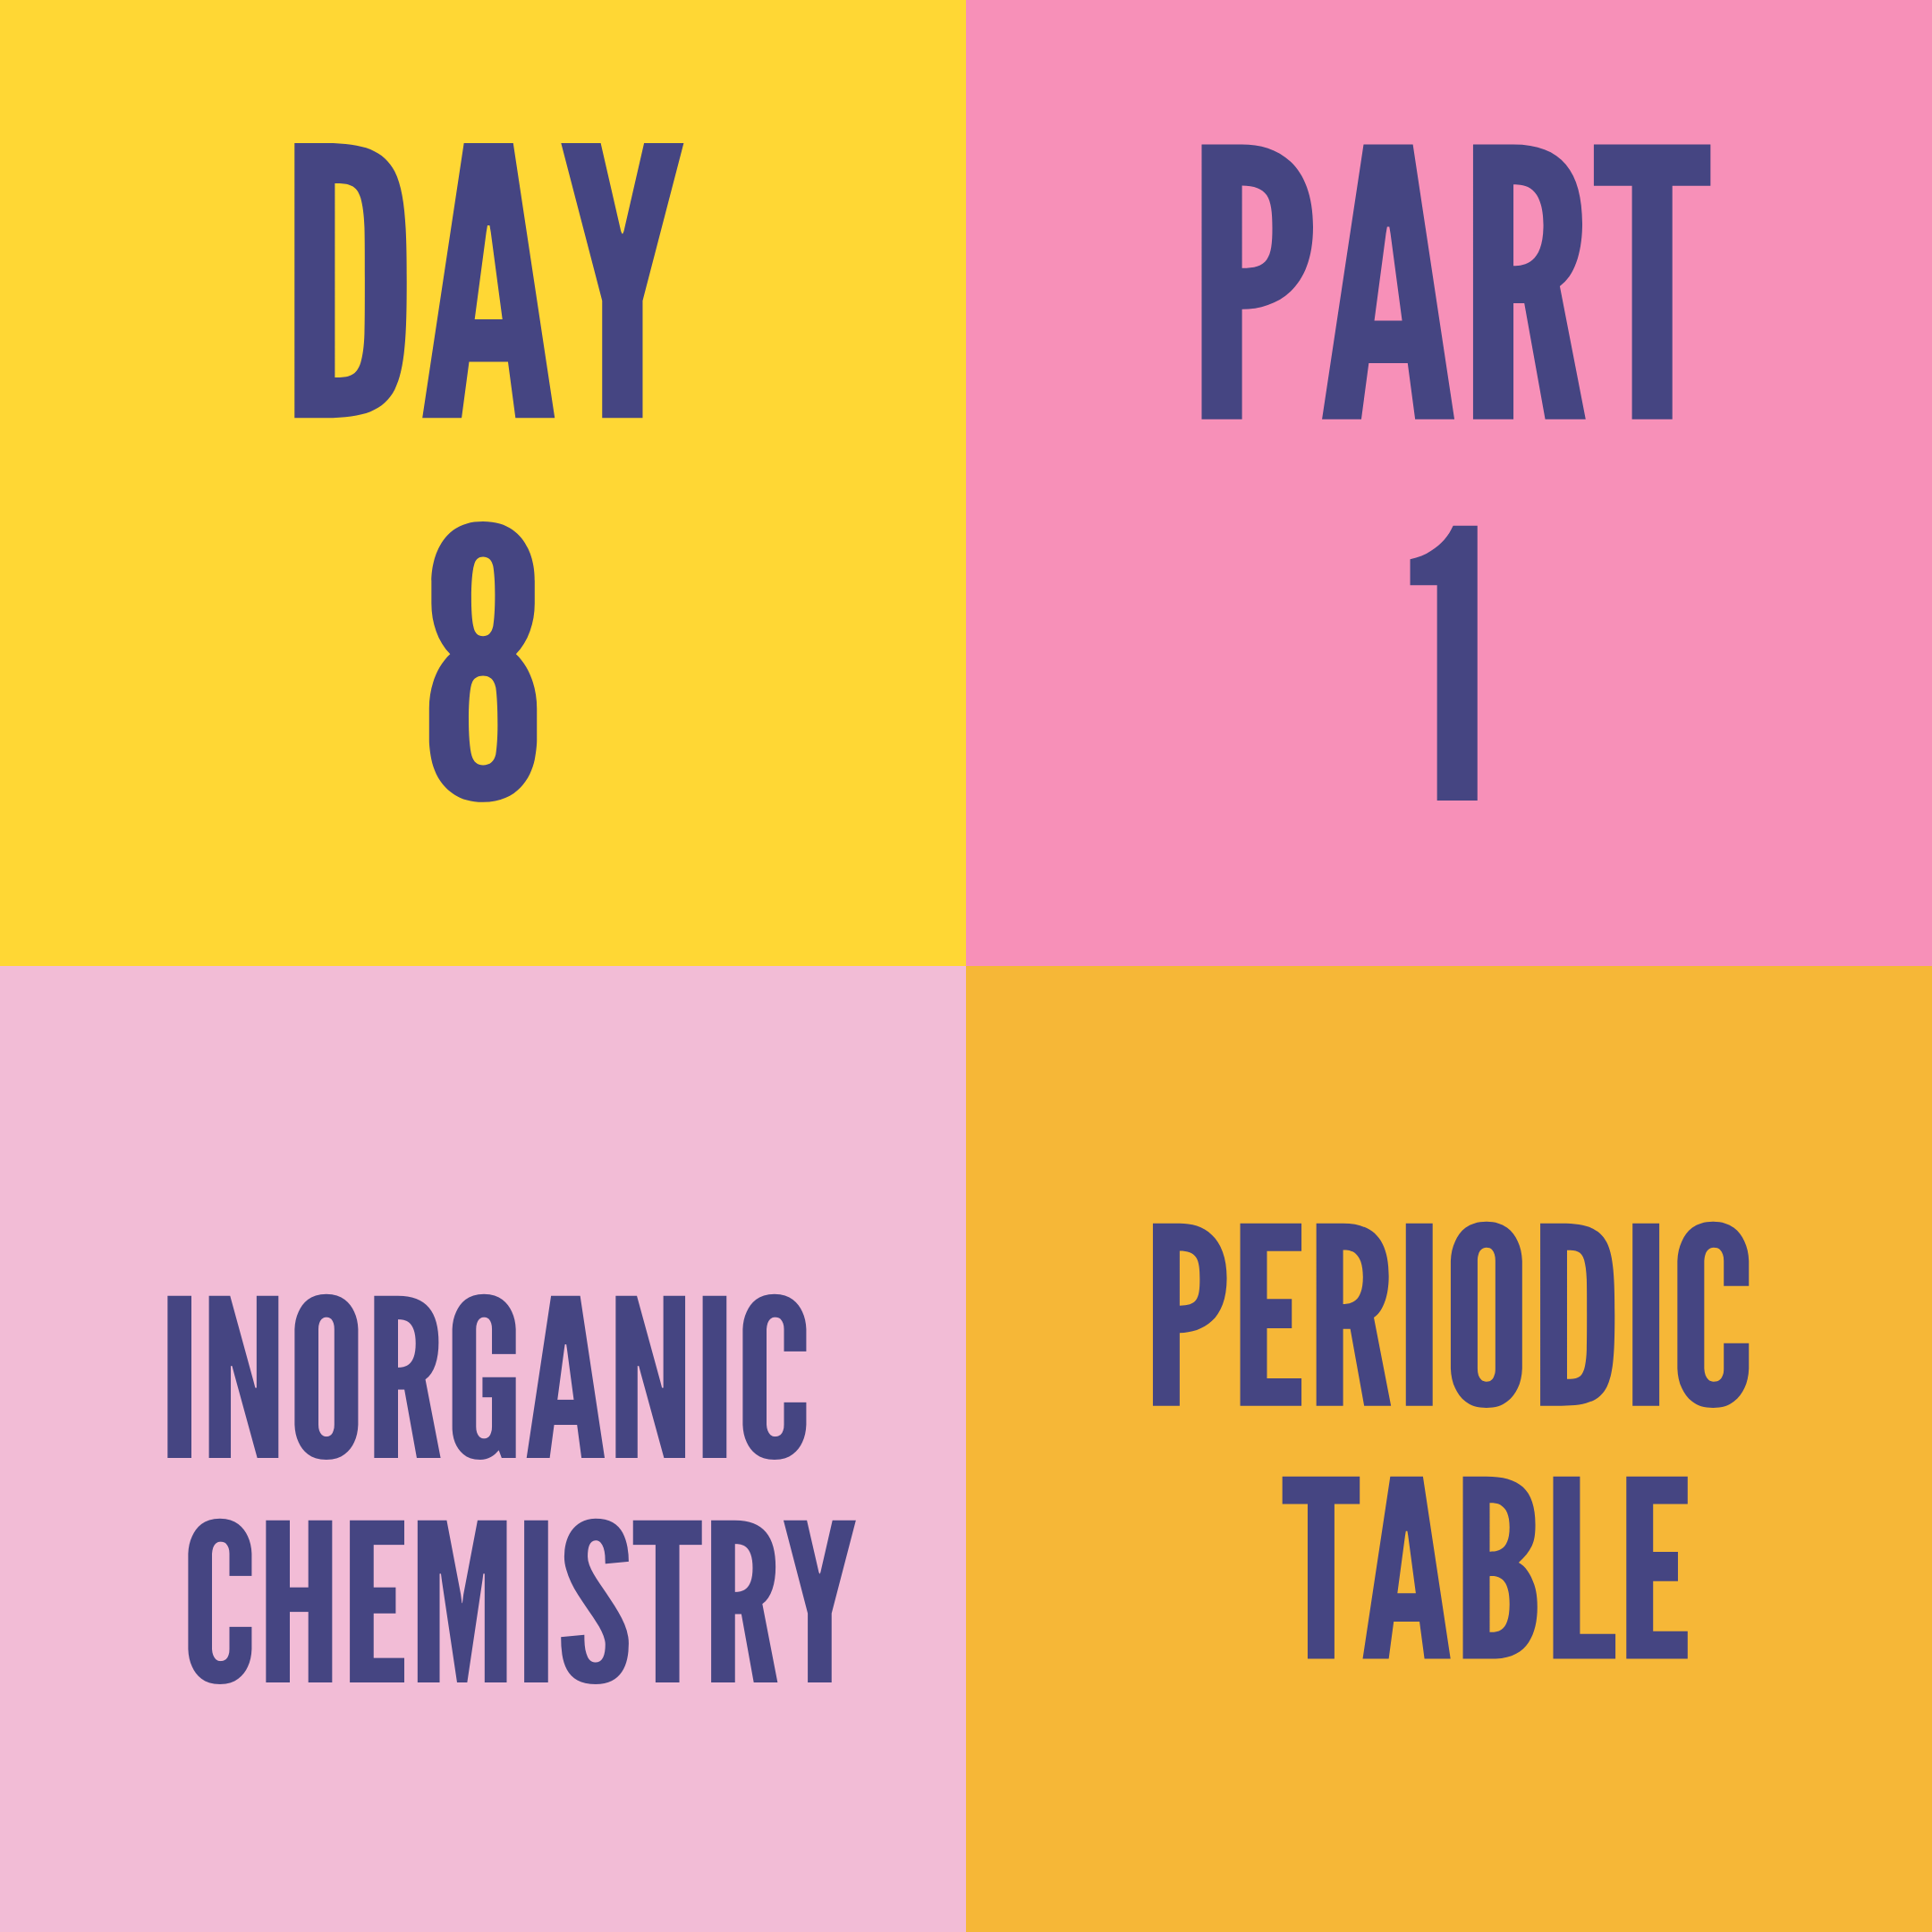 DAY-8 PART-1 PERIODIC TABLE